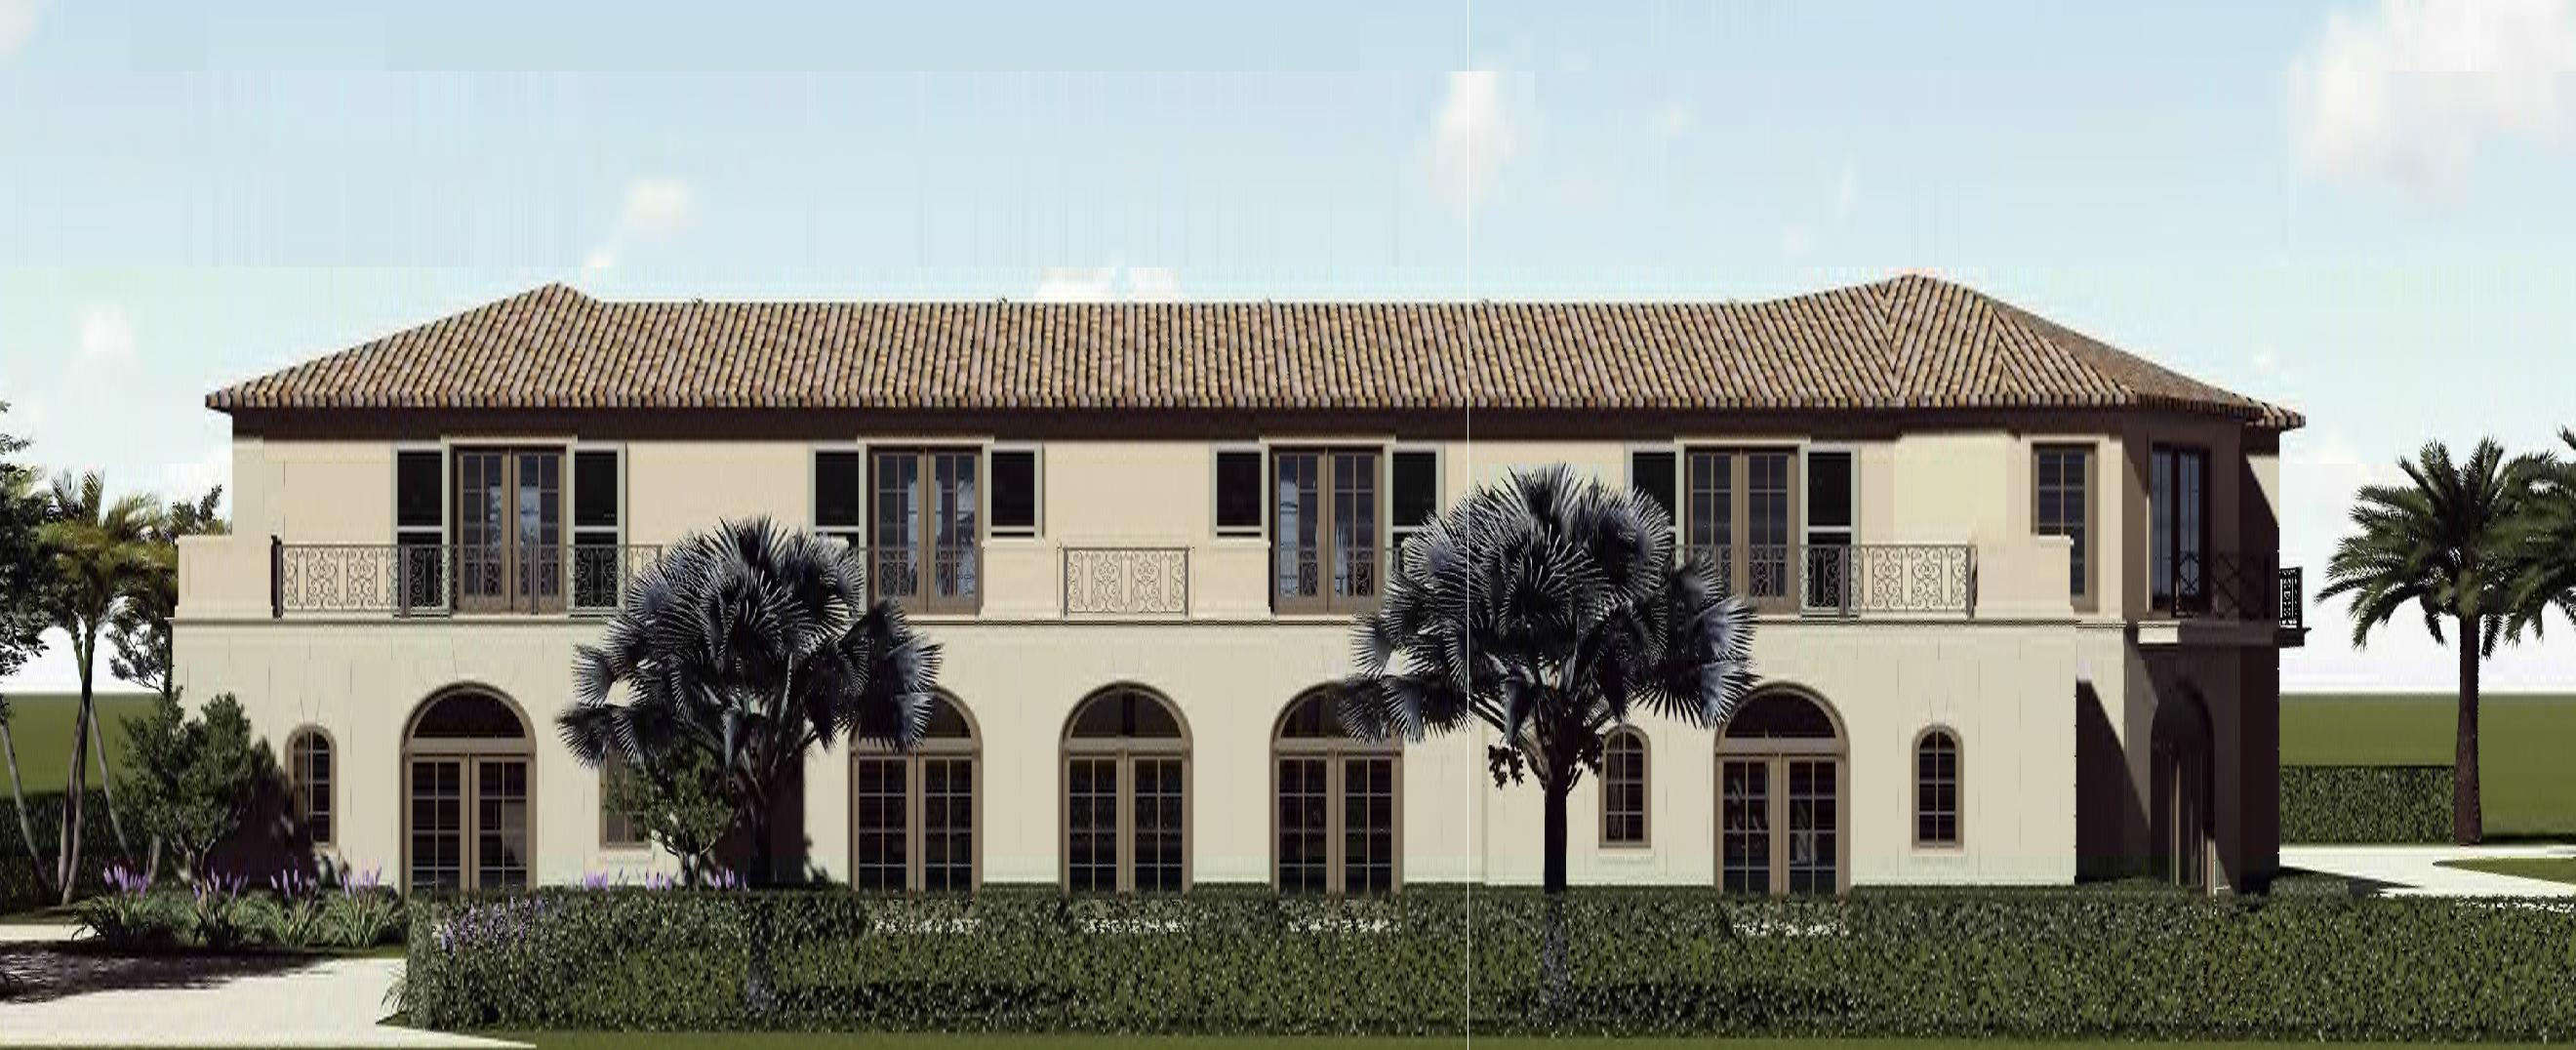 Palm Beach estate section home to be completed early 2022. Every amenity. Beautifully imagined and programmed by Todd Michael Glaser. DISCLAIMER: Information published or otherwise provided by the listing company and its representatives including but not limited to prices, measurements, square footages, lot sizes, calculations and statistics are deemed reliable but are not guaranteed and are subject to errors, omissions or changes without notice. All such information should be independently verified by any prospective purchaser or seller. Parties should perform their own due diligence to verify such information prior to a sale or listing. Listing company expressly disclaims any warranty or representation regarding such information. Prices published are either list price, sold price, and/or last asking price. The listing company participates in the Multiple Listing Service and IDX. The properties published as listed and sold are not necessarily exclusive to listing company and may be listed or have sold with other members of the Multiple Listing Service. Transactions where listing company represented both buyers and sellers are calculated as two sales. The listing company's marketplace is all of the following: Vero Beach, Town of Orchid, Indian River Shores, Town of Palm Beach, West Palm Beach, Manalapan Beach, Point Manalapan, Hypoluxo Island, Ocean Ridge, Gulf Stream, Delray Beach, Highland Beach, Boca Raton, East Deerfield Beach, Hillsboro Beach, Hillsboro Shores, East Pompano Beach, Lighthouse Point, Sea Ranch Lakes and Fort Lauderdale. Cooperating brokers are advised that in the event of a Buyer default, no commission will be paid to a cooperating Broker on the Deposits retained by the Seller. No commissions are paid to any cooperating broker until title passes or upon actual commencement of a lease. Some affiliations may not be applicable to certain geographic areas. If your property is currently listed with another broker, please disregard any solicitation for services. Copyright 2021 by the listing company. All Rights Reserved.